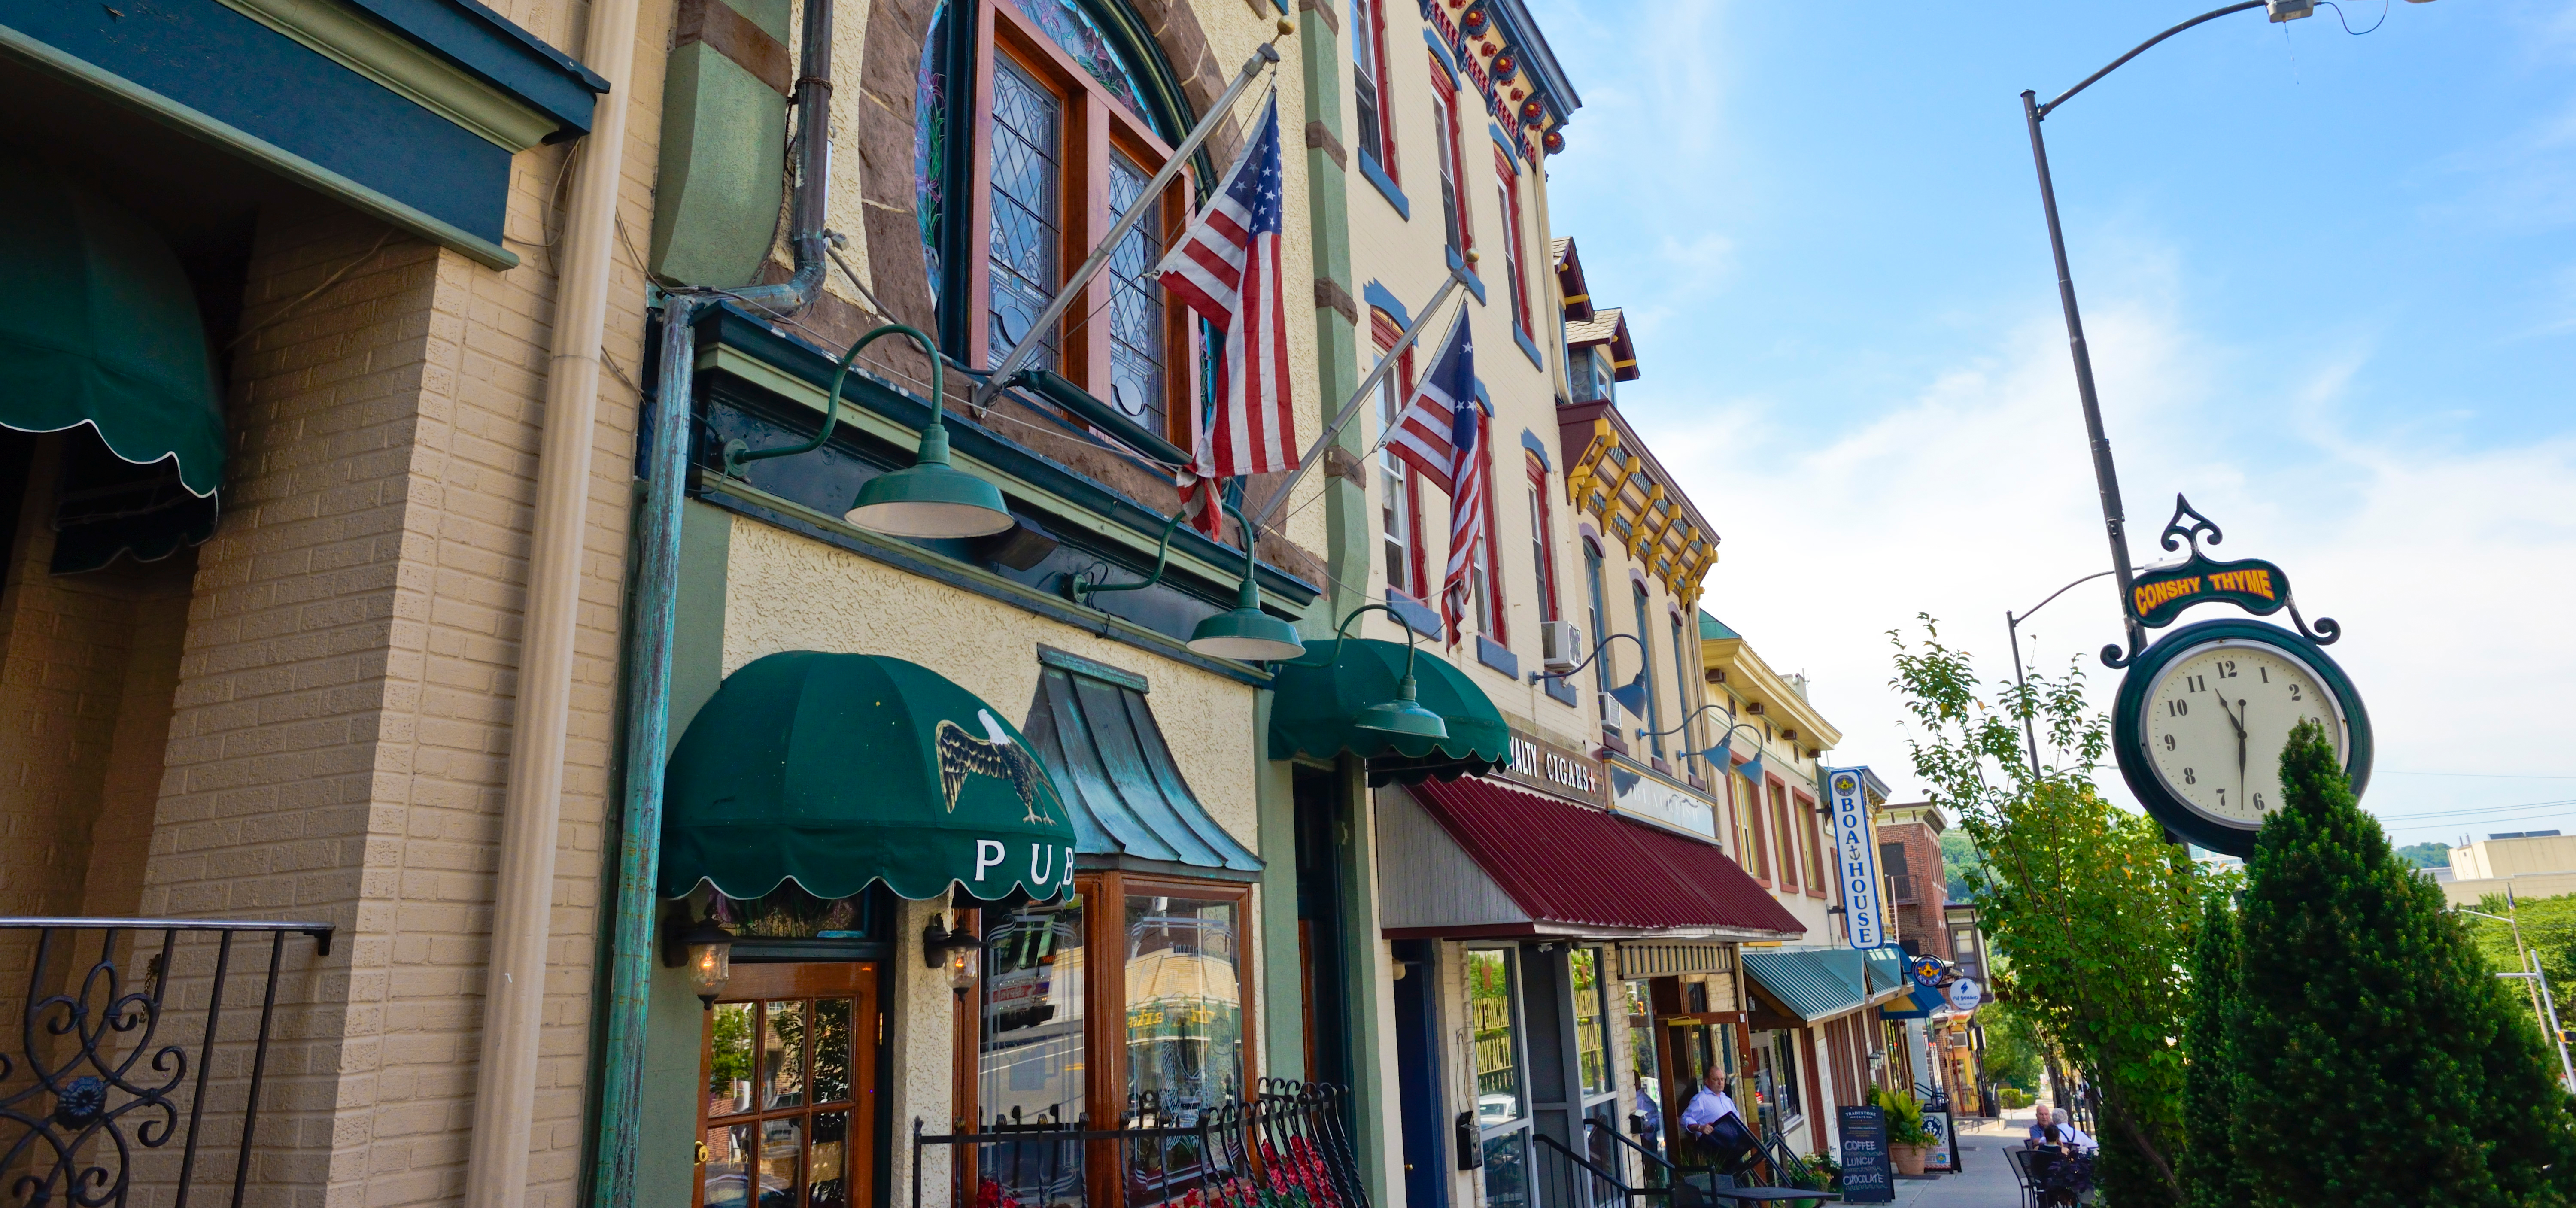 Conshohocken, PA Attractions, Restaurants & Hotels on willow grove, montgomery county, north wales, west conshohocken, red hill, king of prussia, fort washington,